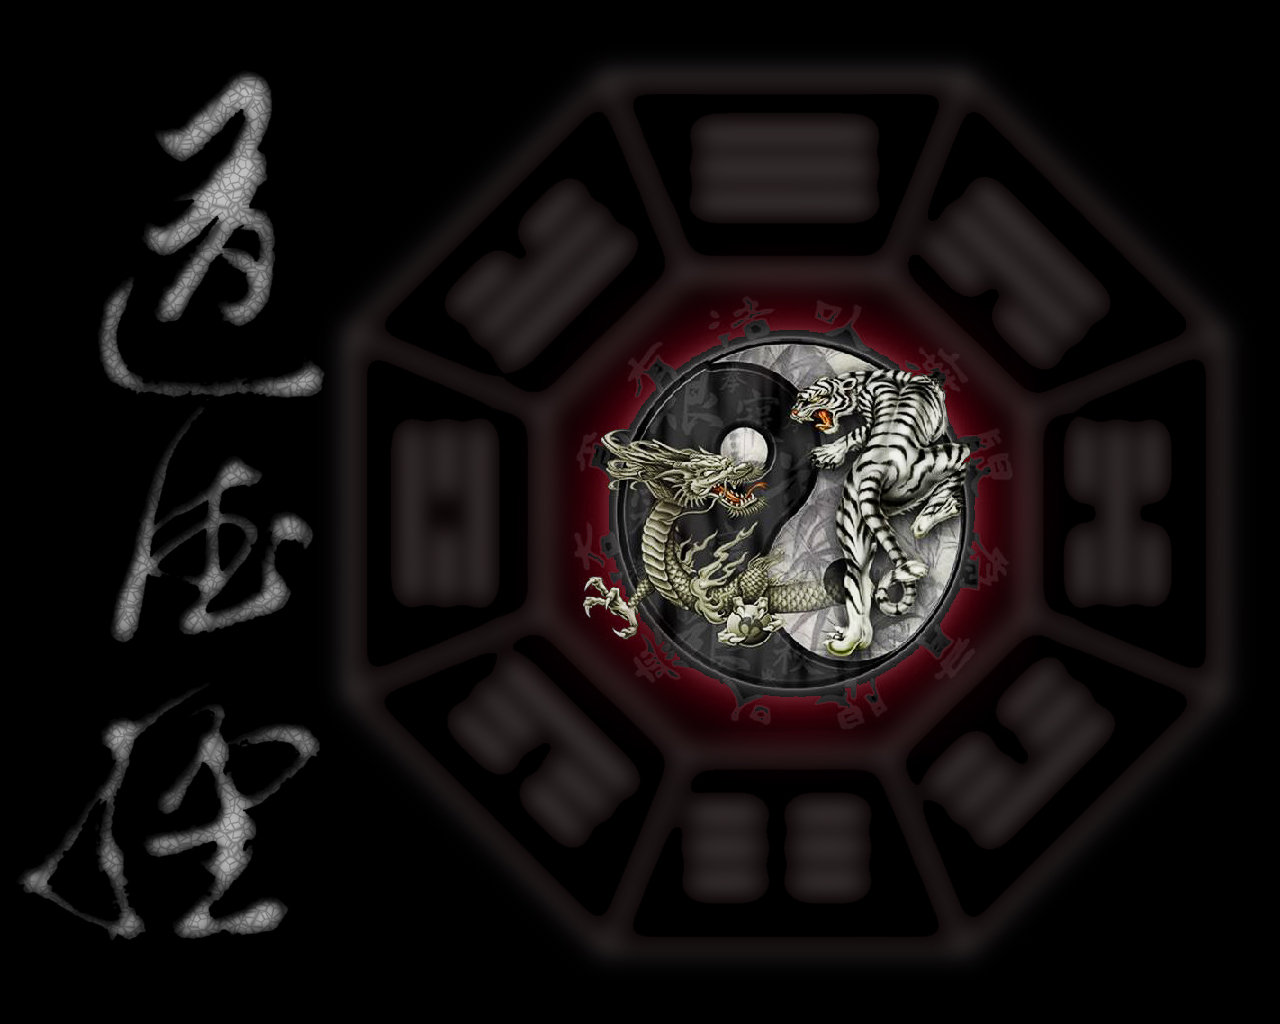 tao te ching by toon cubed customization wallpaper minimalistic dark 1280x1024